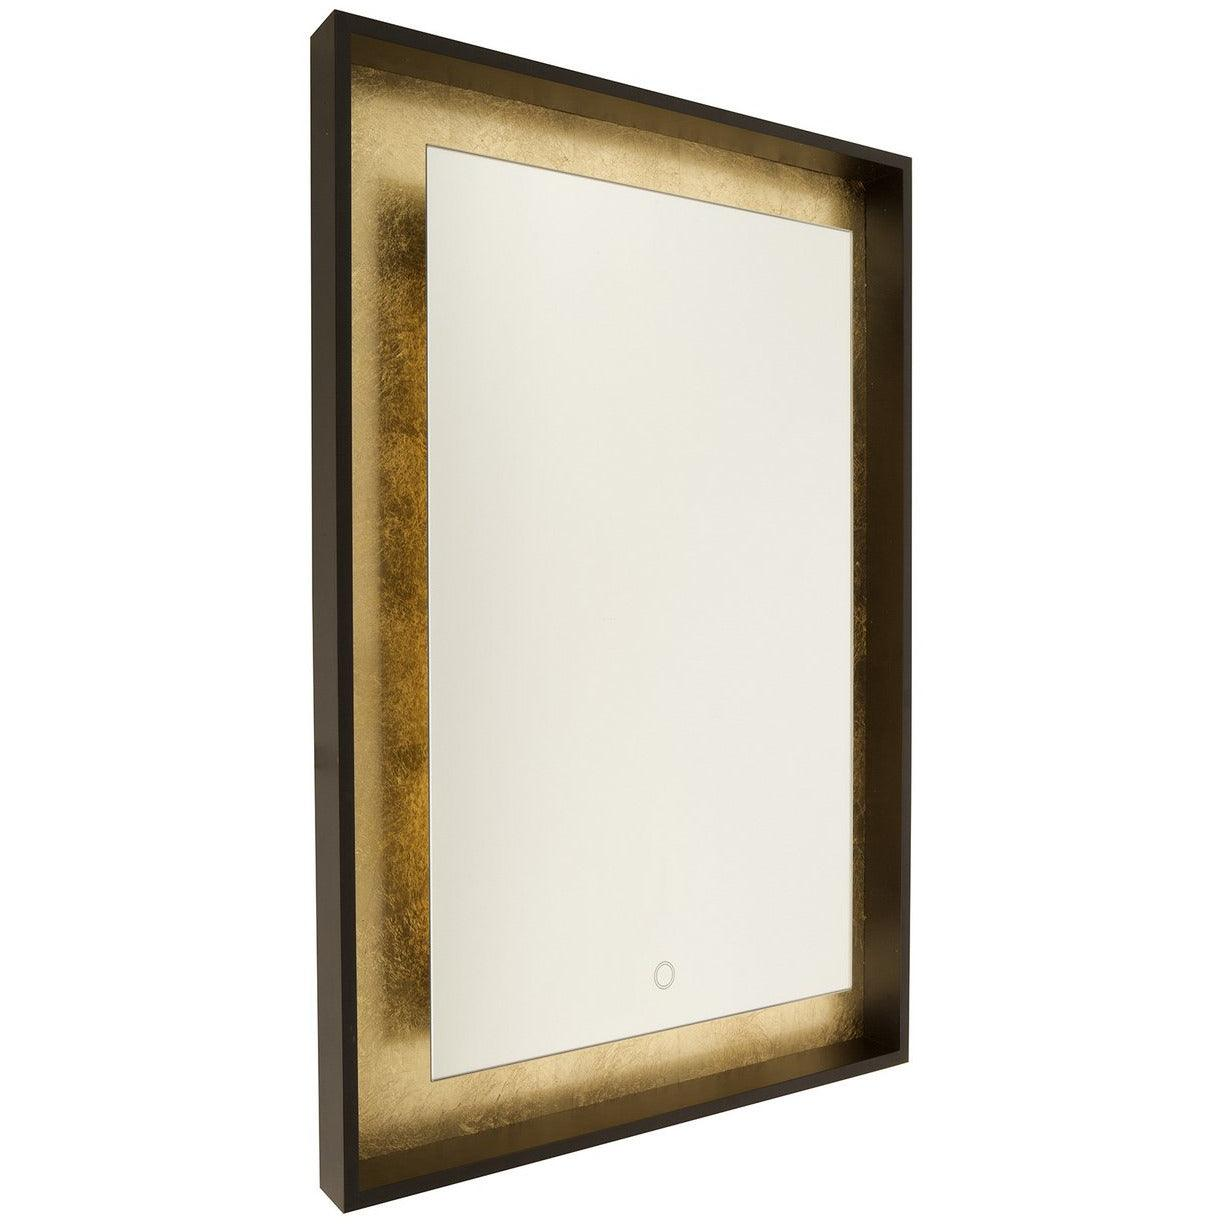 Artcraft Lighting - AM312 - LED Mirror - Reflections - Oil Rubbed Bronze & Gold Leaf